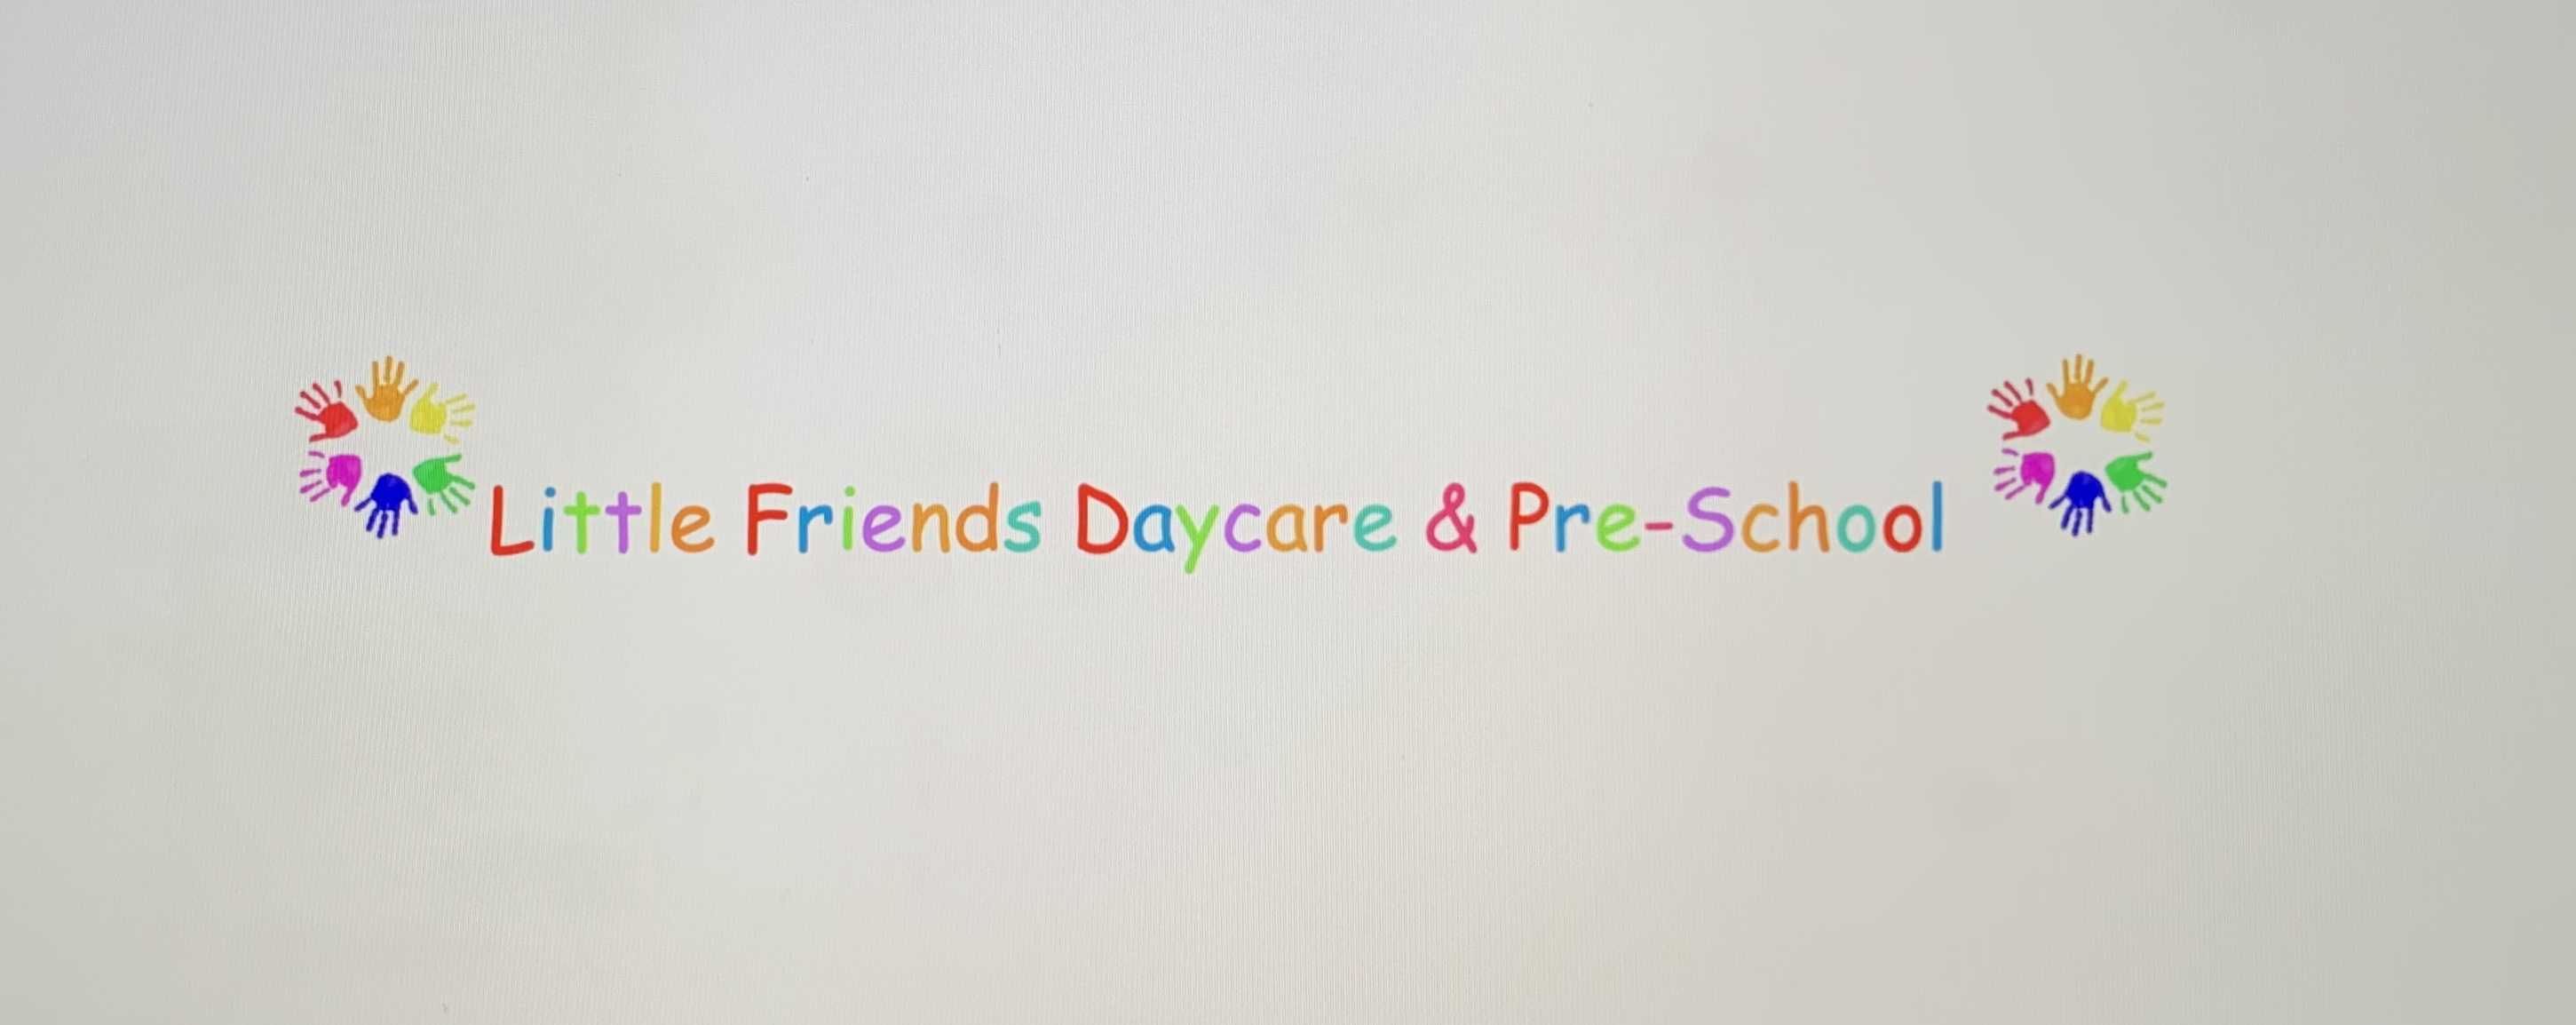 Little Friends Daycare & Pre-School